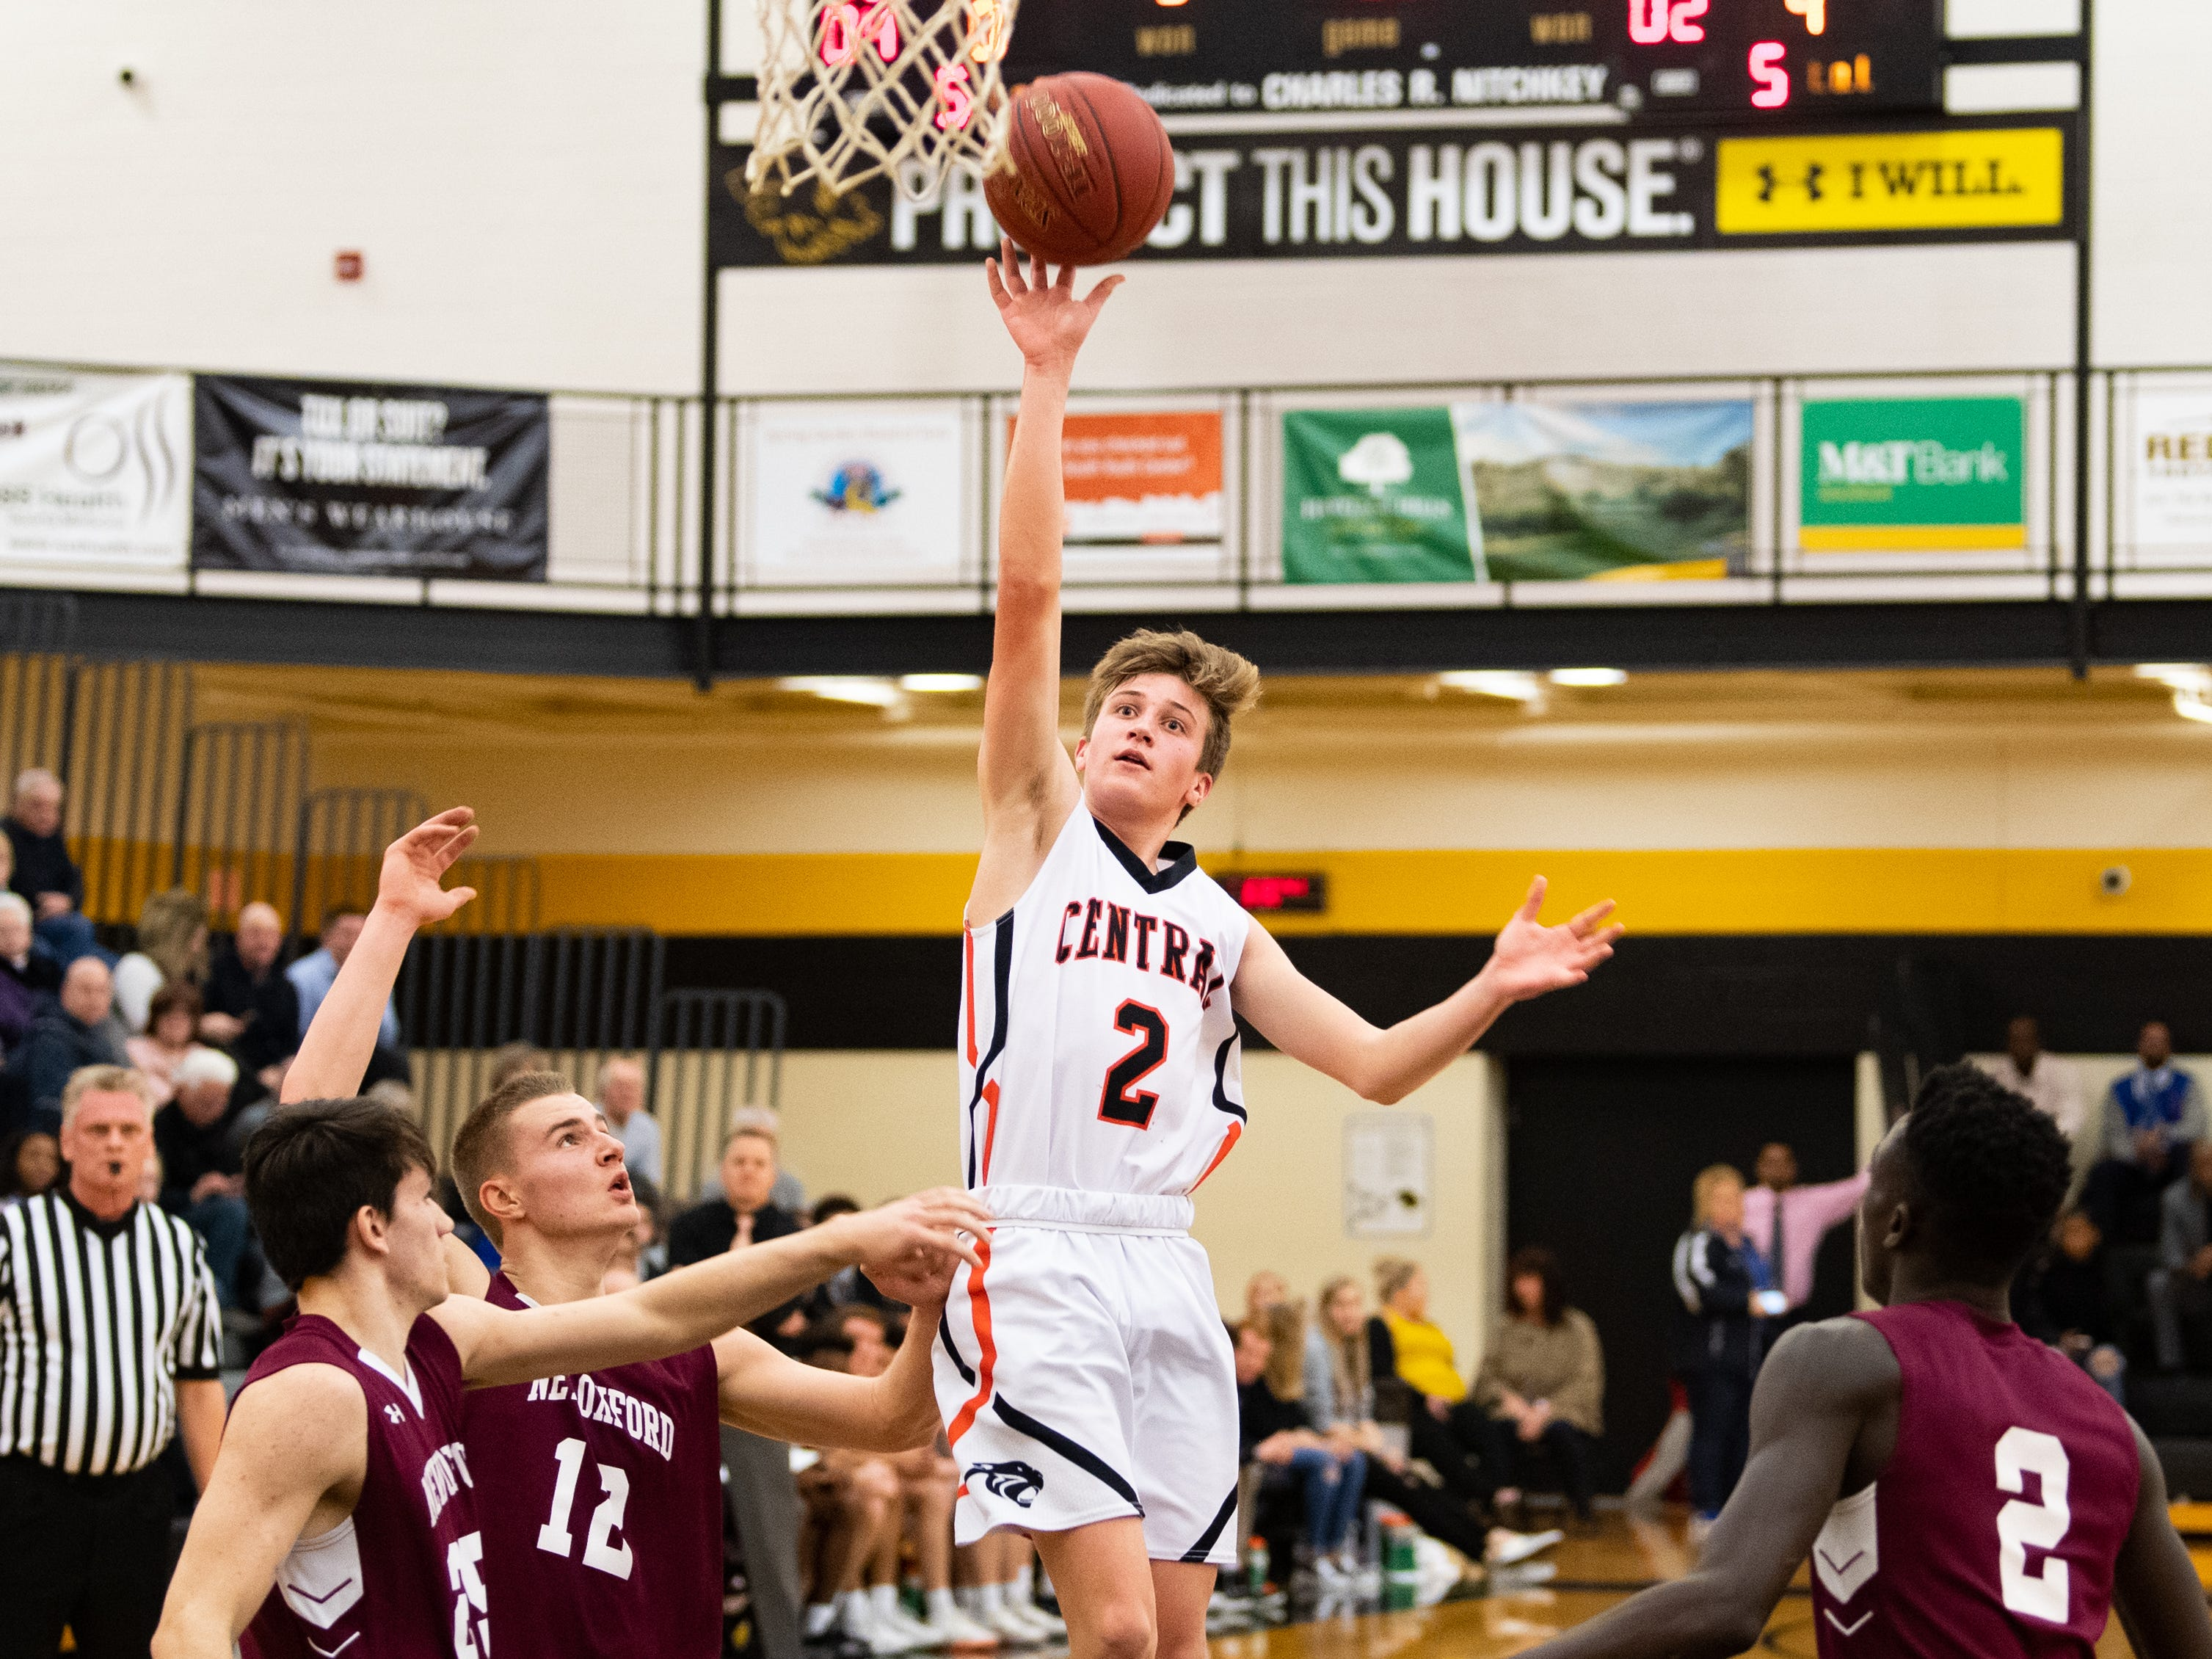 Alex Salter (2) throws up the floater during the YAIAA boys' basketball semifinals between Central York and New Oxford, Wednesday, February 13, 2019 at Red Lion Area High School. The Colonials defeated the Panthers 43 to 41.